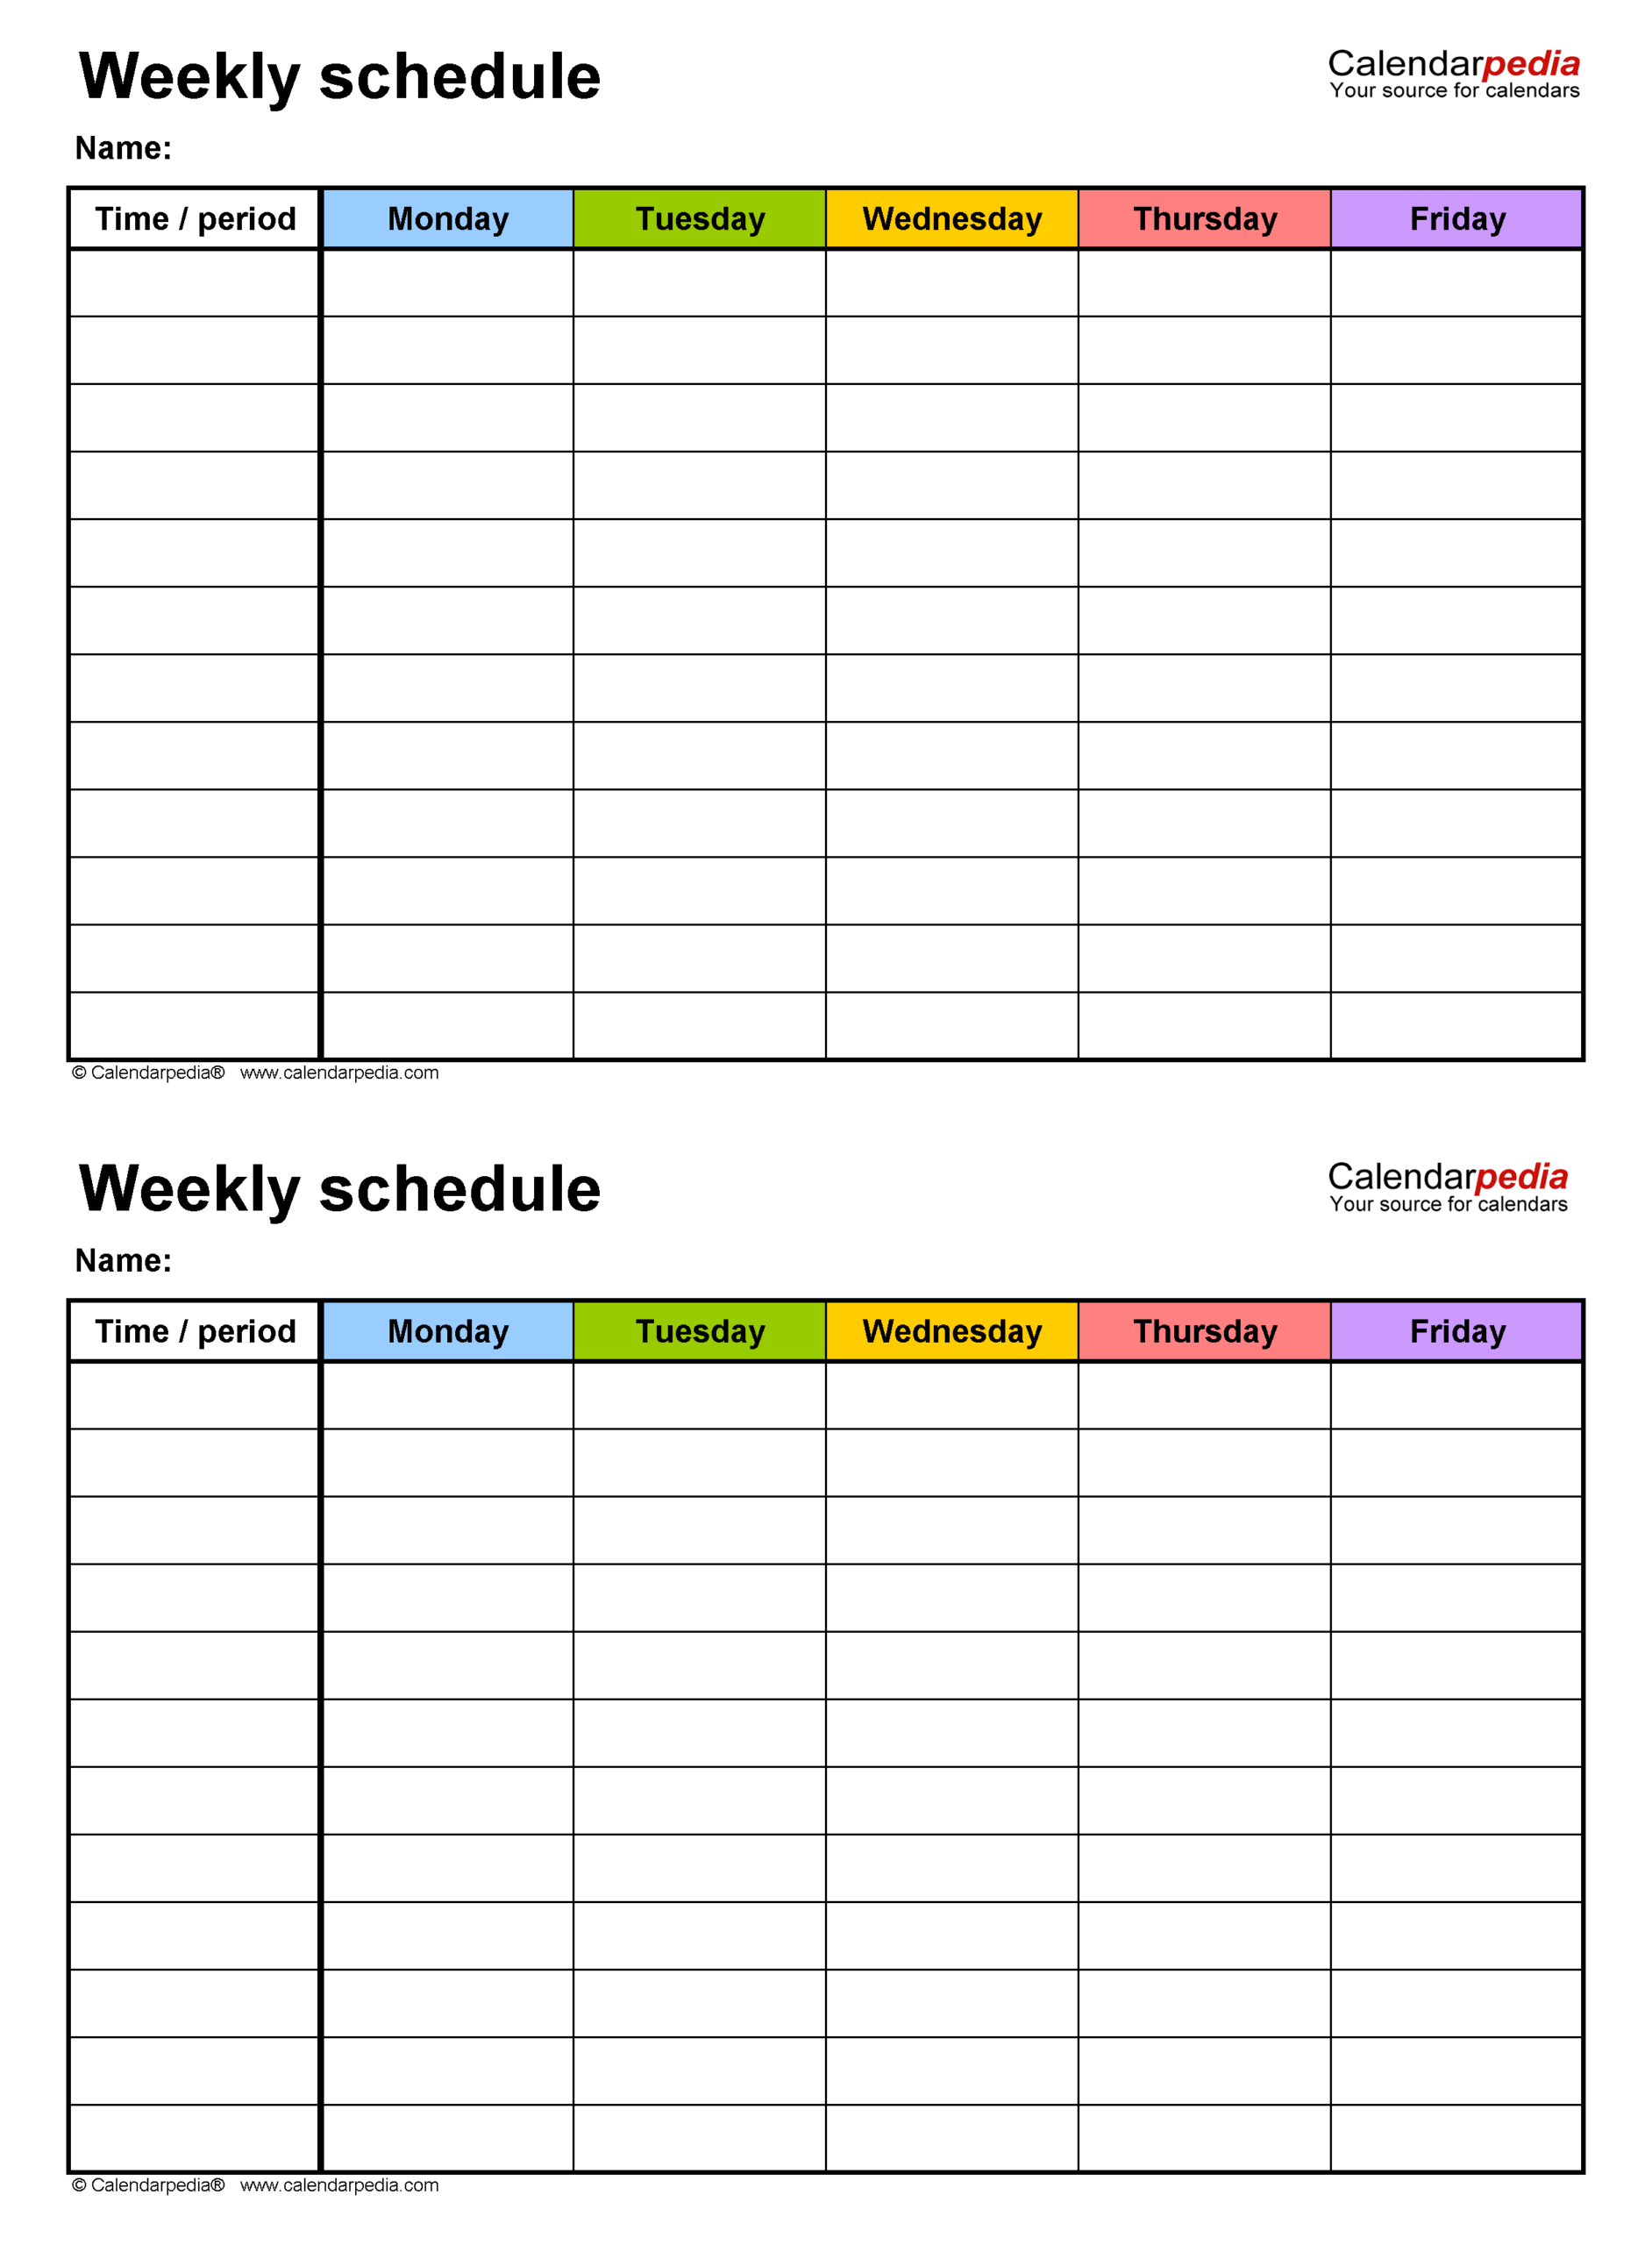 Free Weekly Schedule Templates For Word  18 Templates in 3 Week Blank Calendar